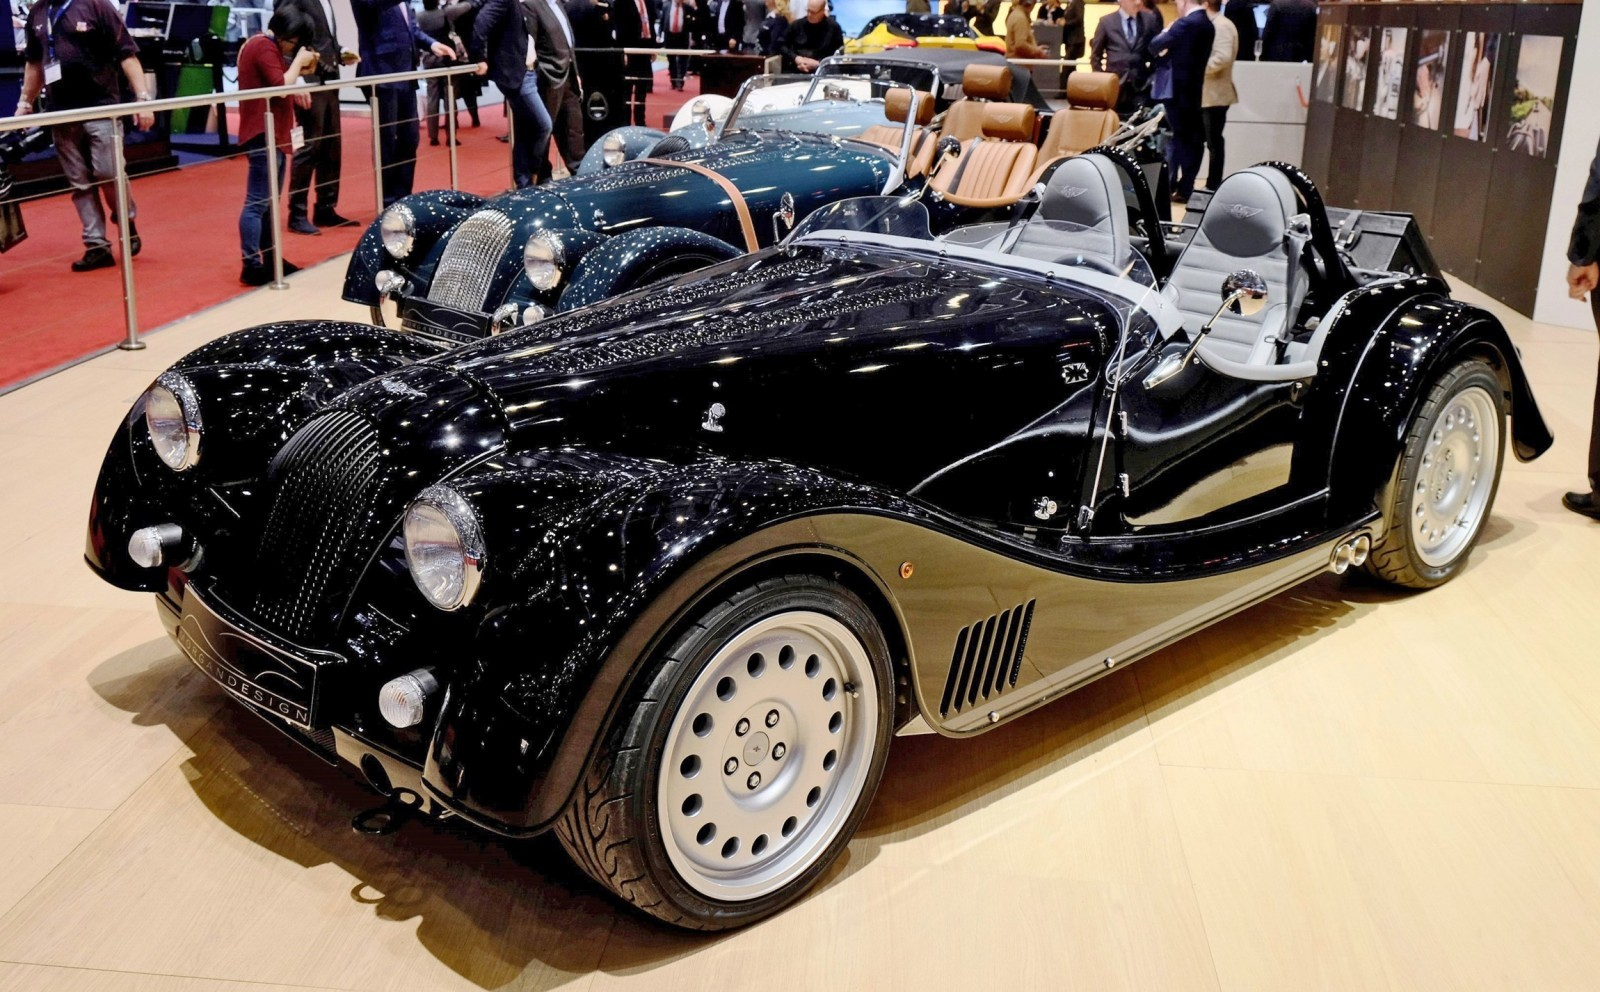 2015 Morgan Plus 8 SPEEDSTER Headlines Geneva Show Stand 2